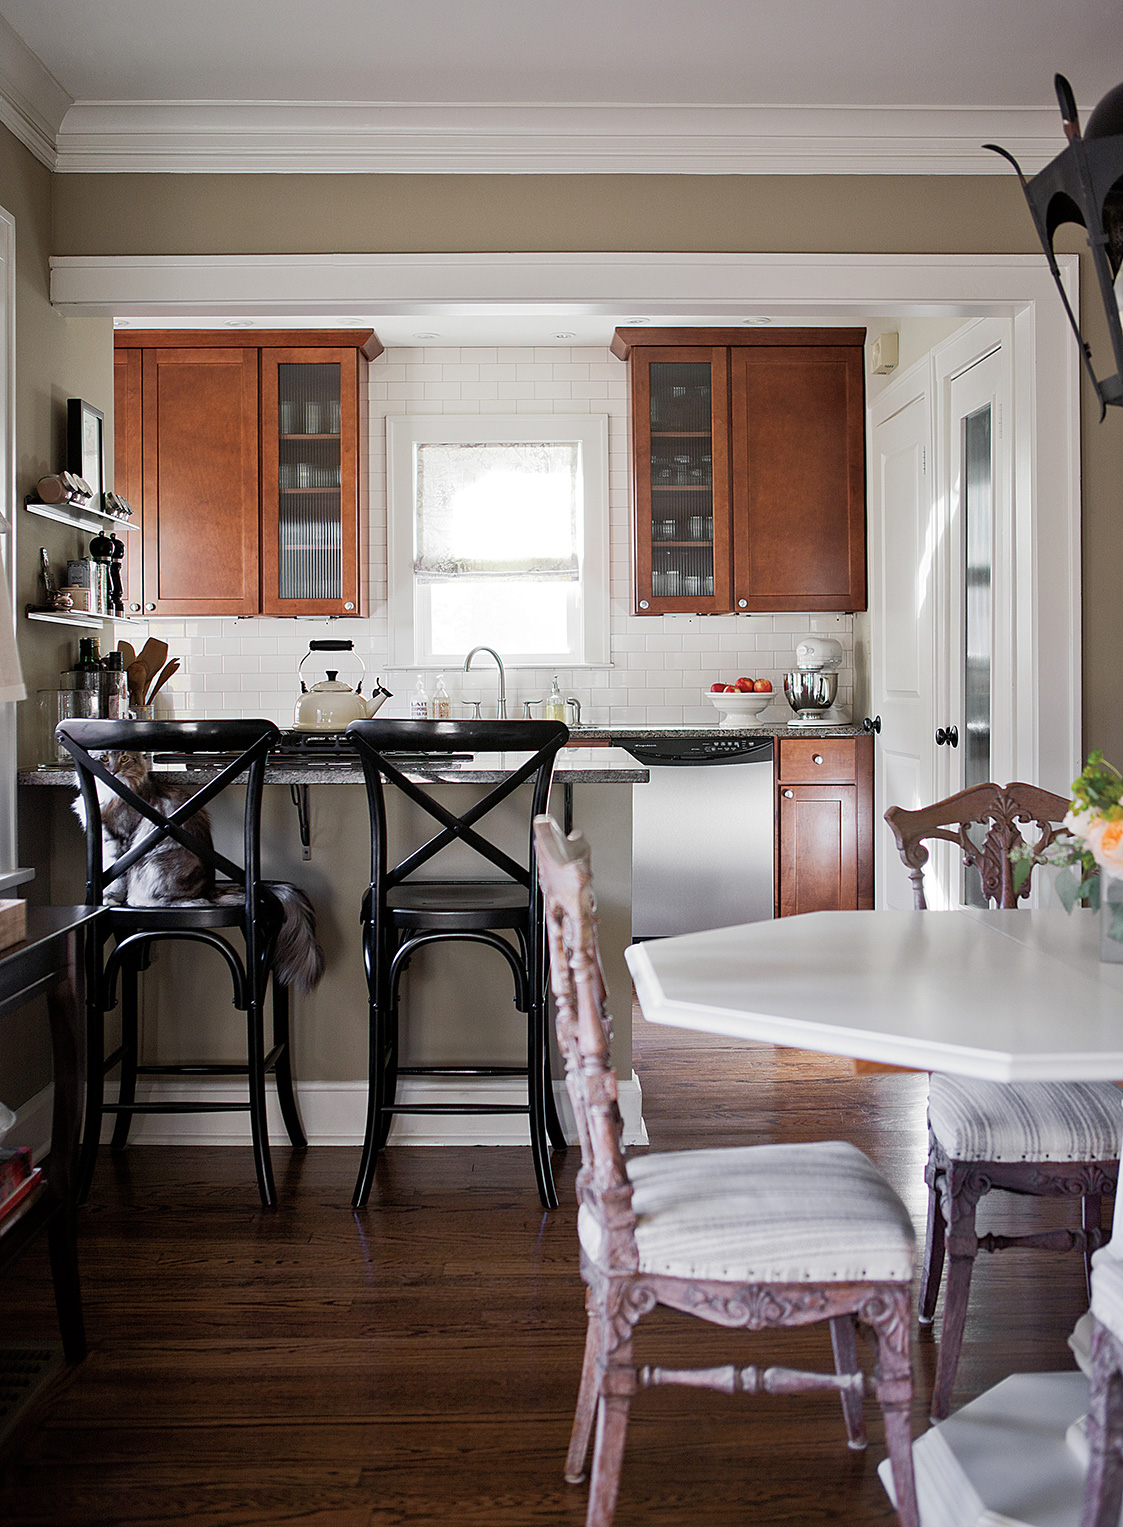 Westwood Hills Bungalow | Amanda Steiner Design | Warm Kitchen with Bar Stools and Dining Area